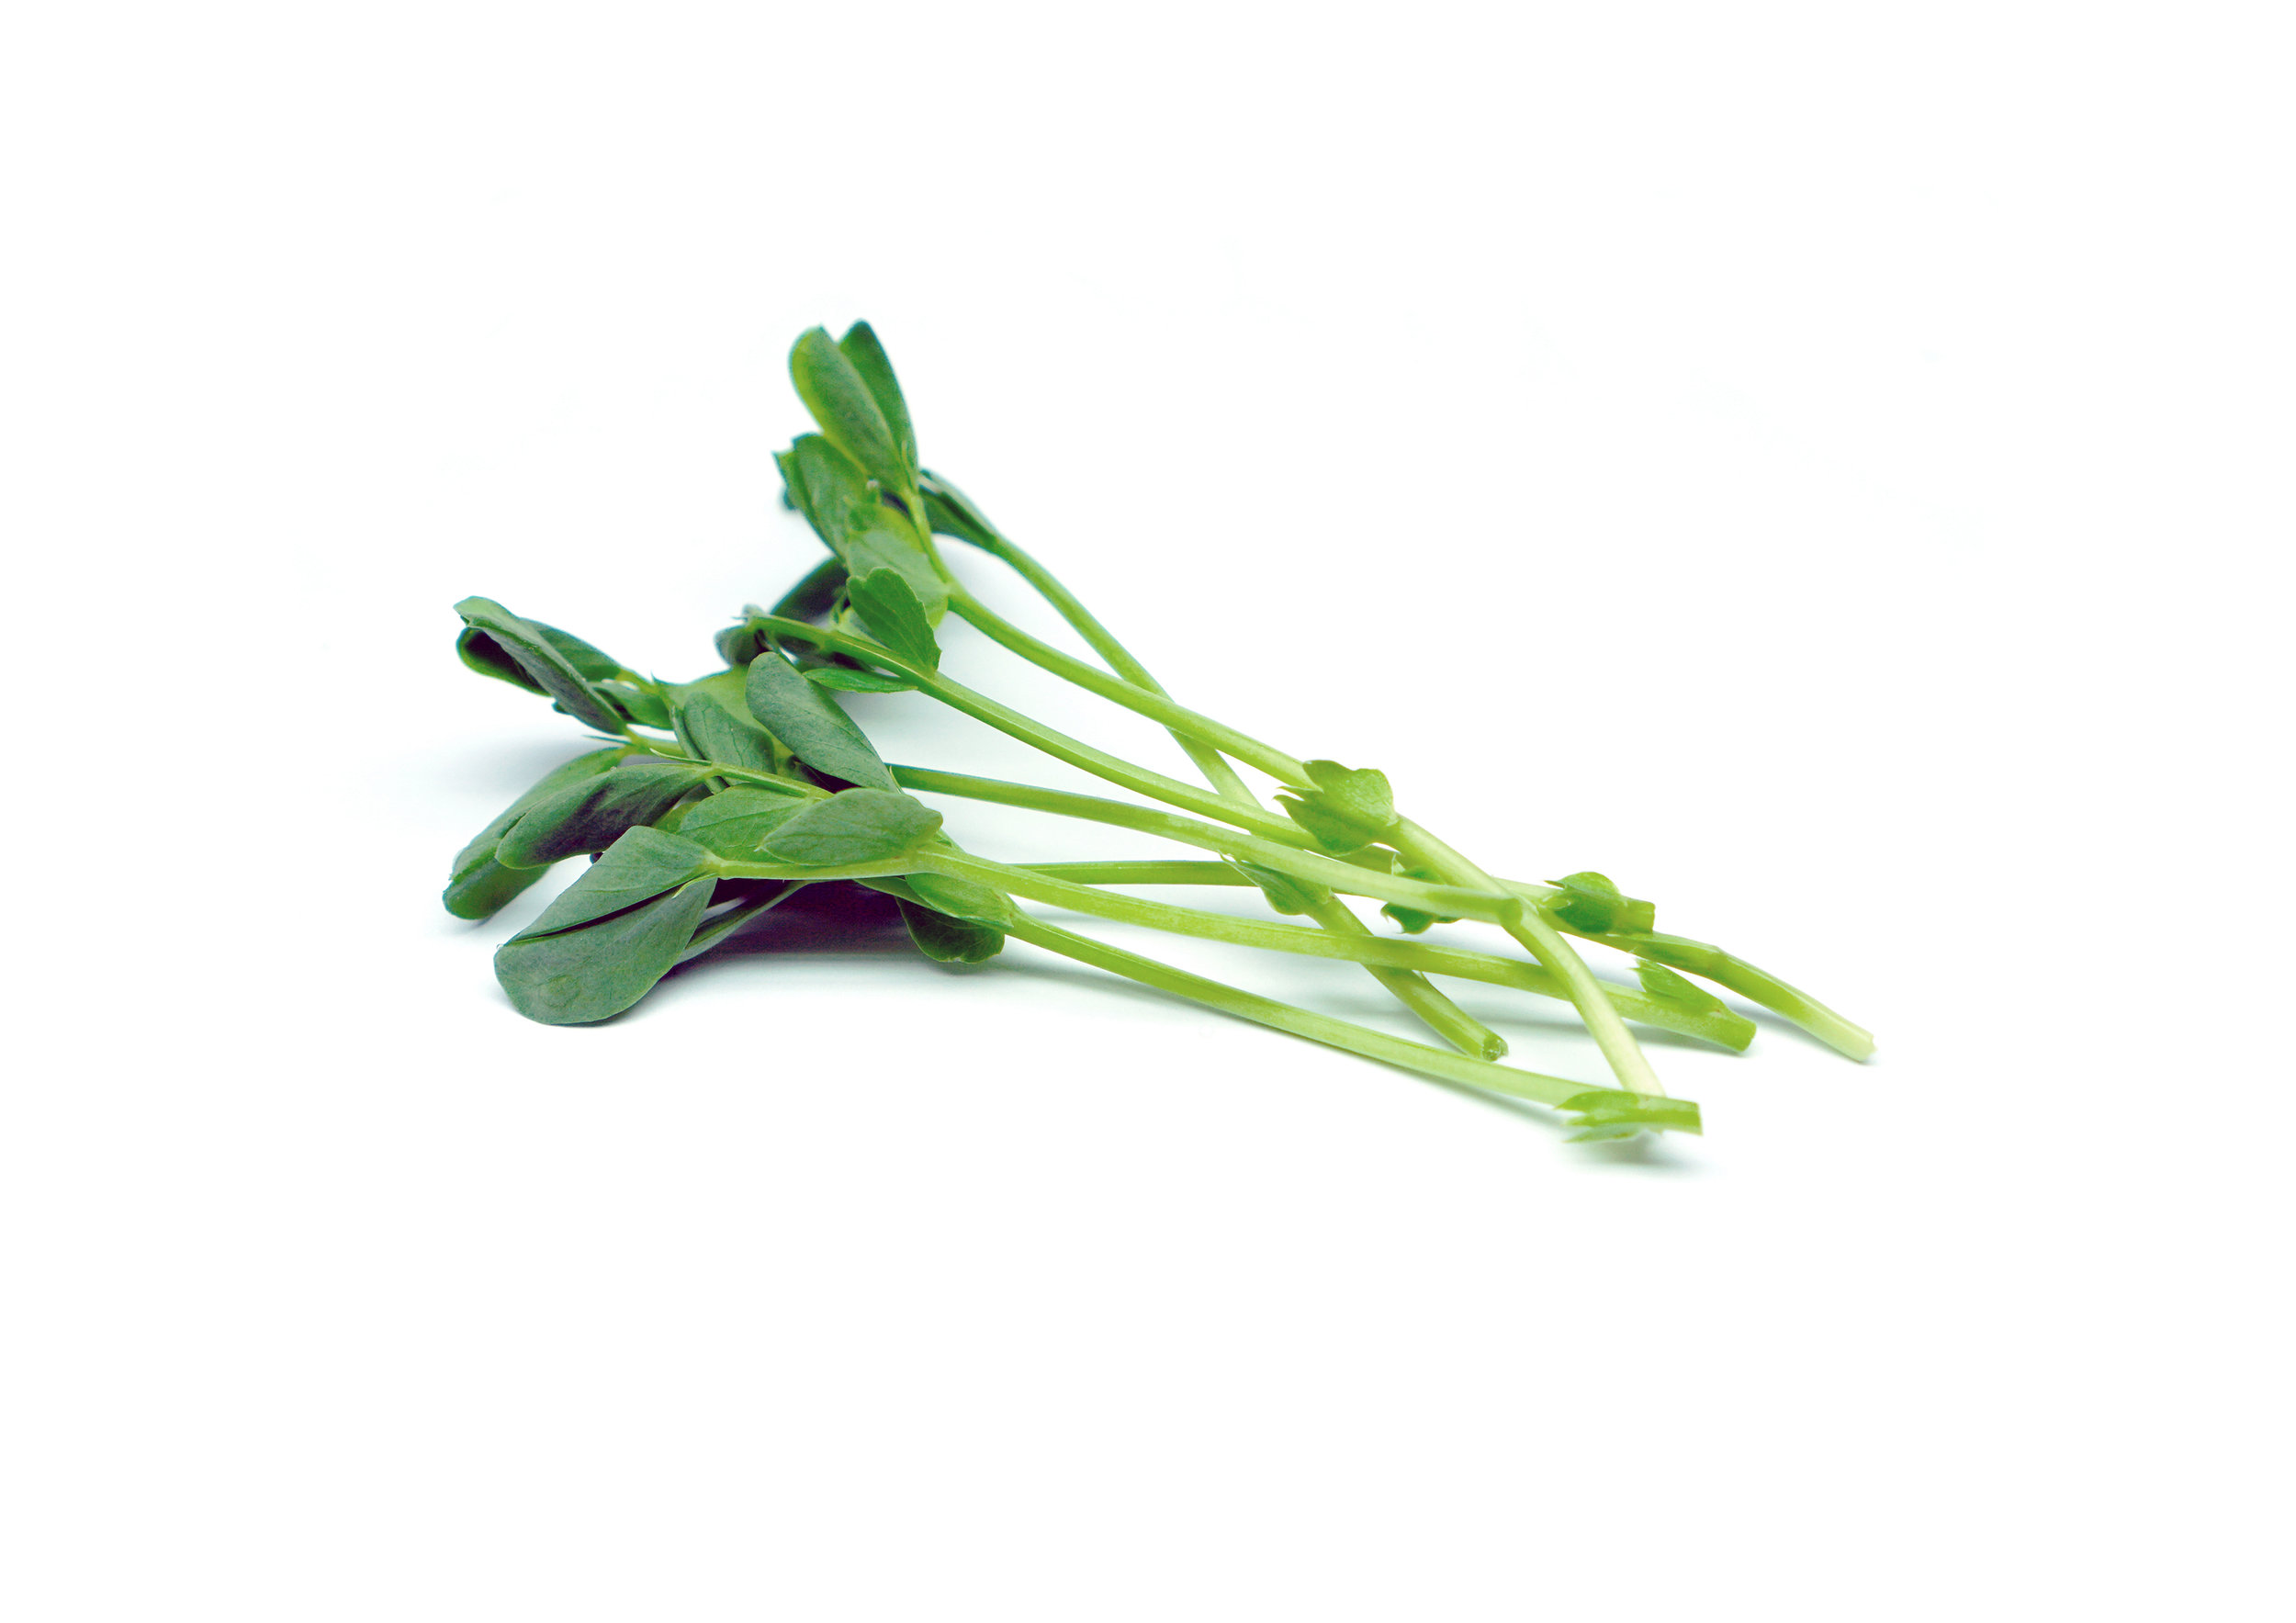 Pea shoots are a popular crop as they can be eaten fresh or cooked. Great with kids as they tend to be slightly sweet. Their tender leaves make a wonderful addition to salads and they are a great addition to soups and stir fries, maintaining much of their firm texture once cooked or sautéed. Very high in vitamin A, C, and folic acid (B9).